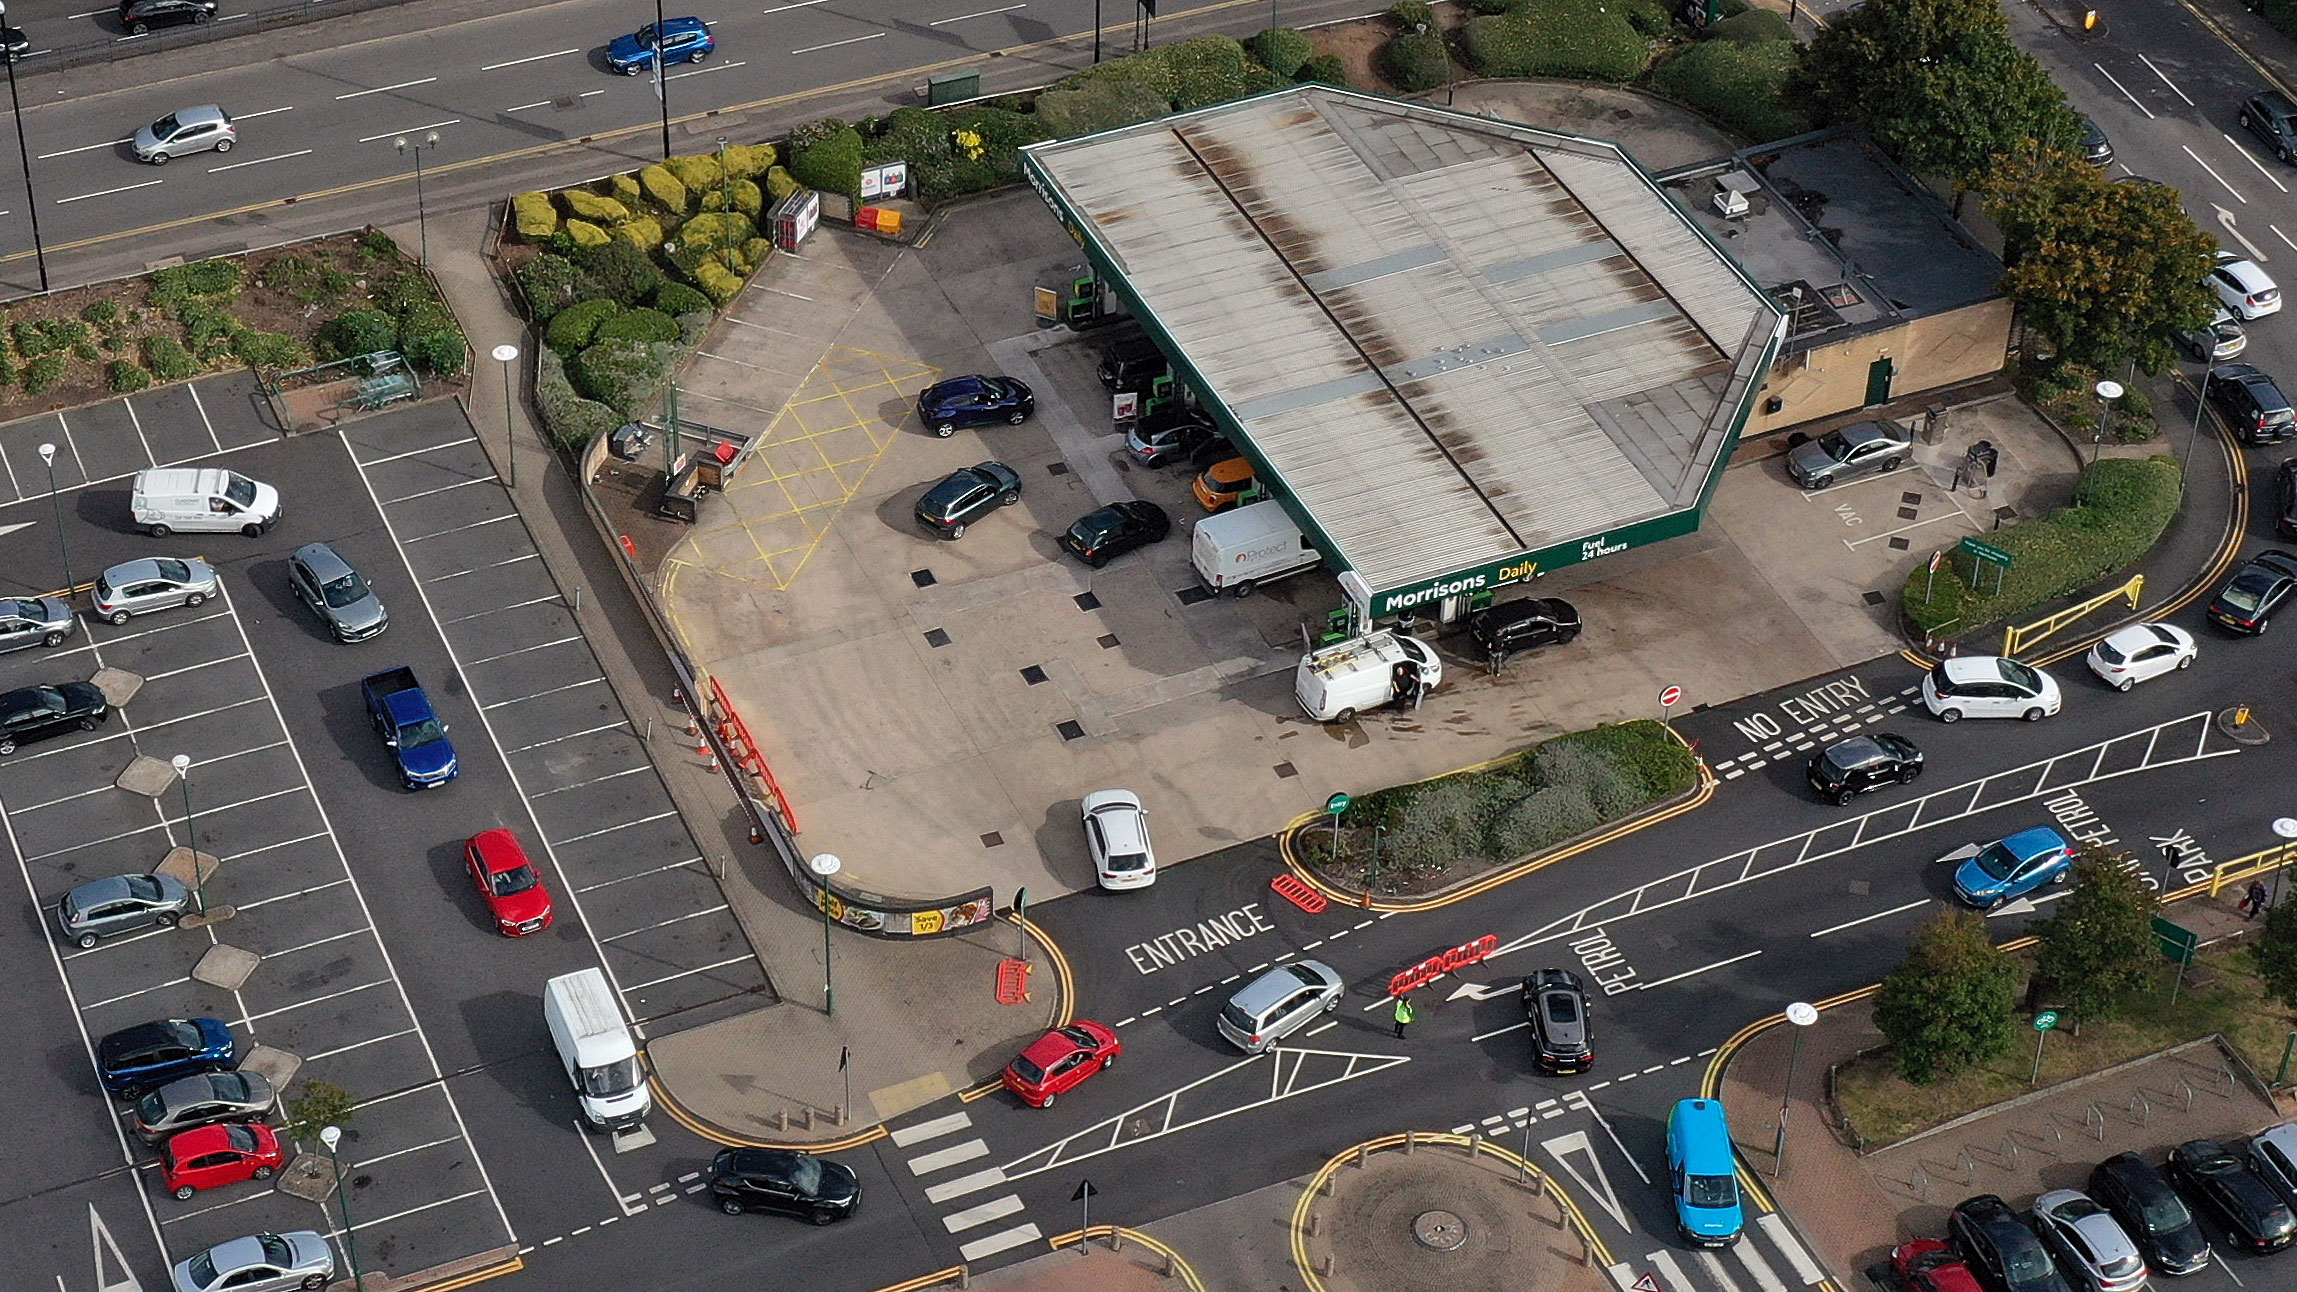 Motorists wait in line at a gas station in Coventry, England, on Tuesday.